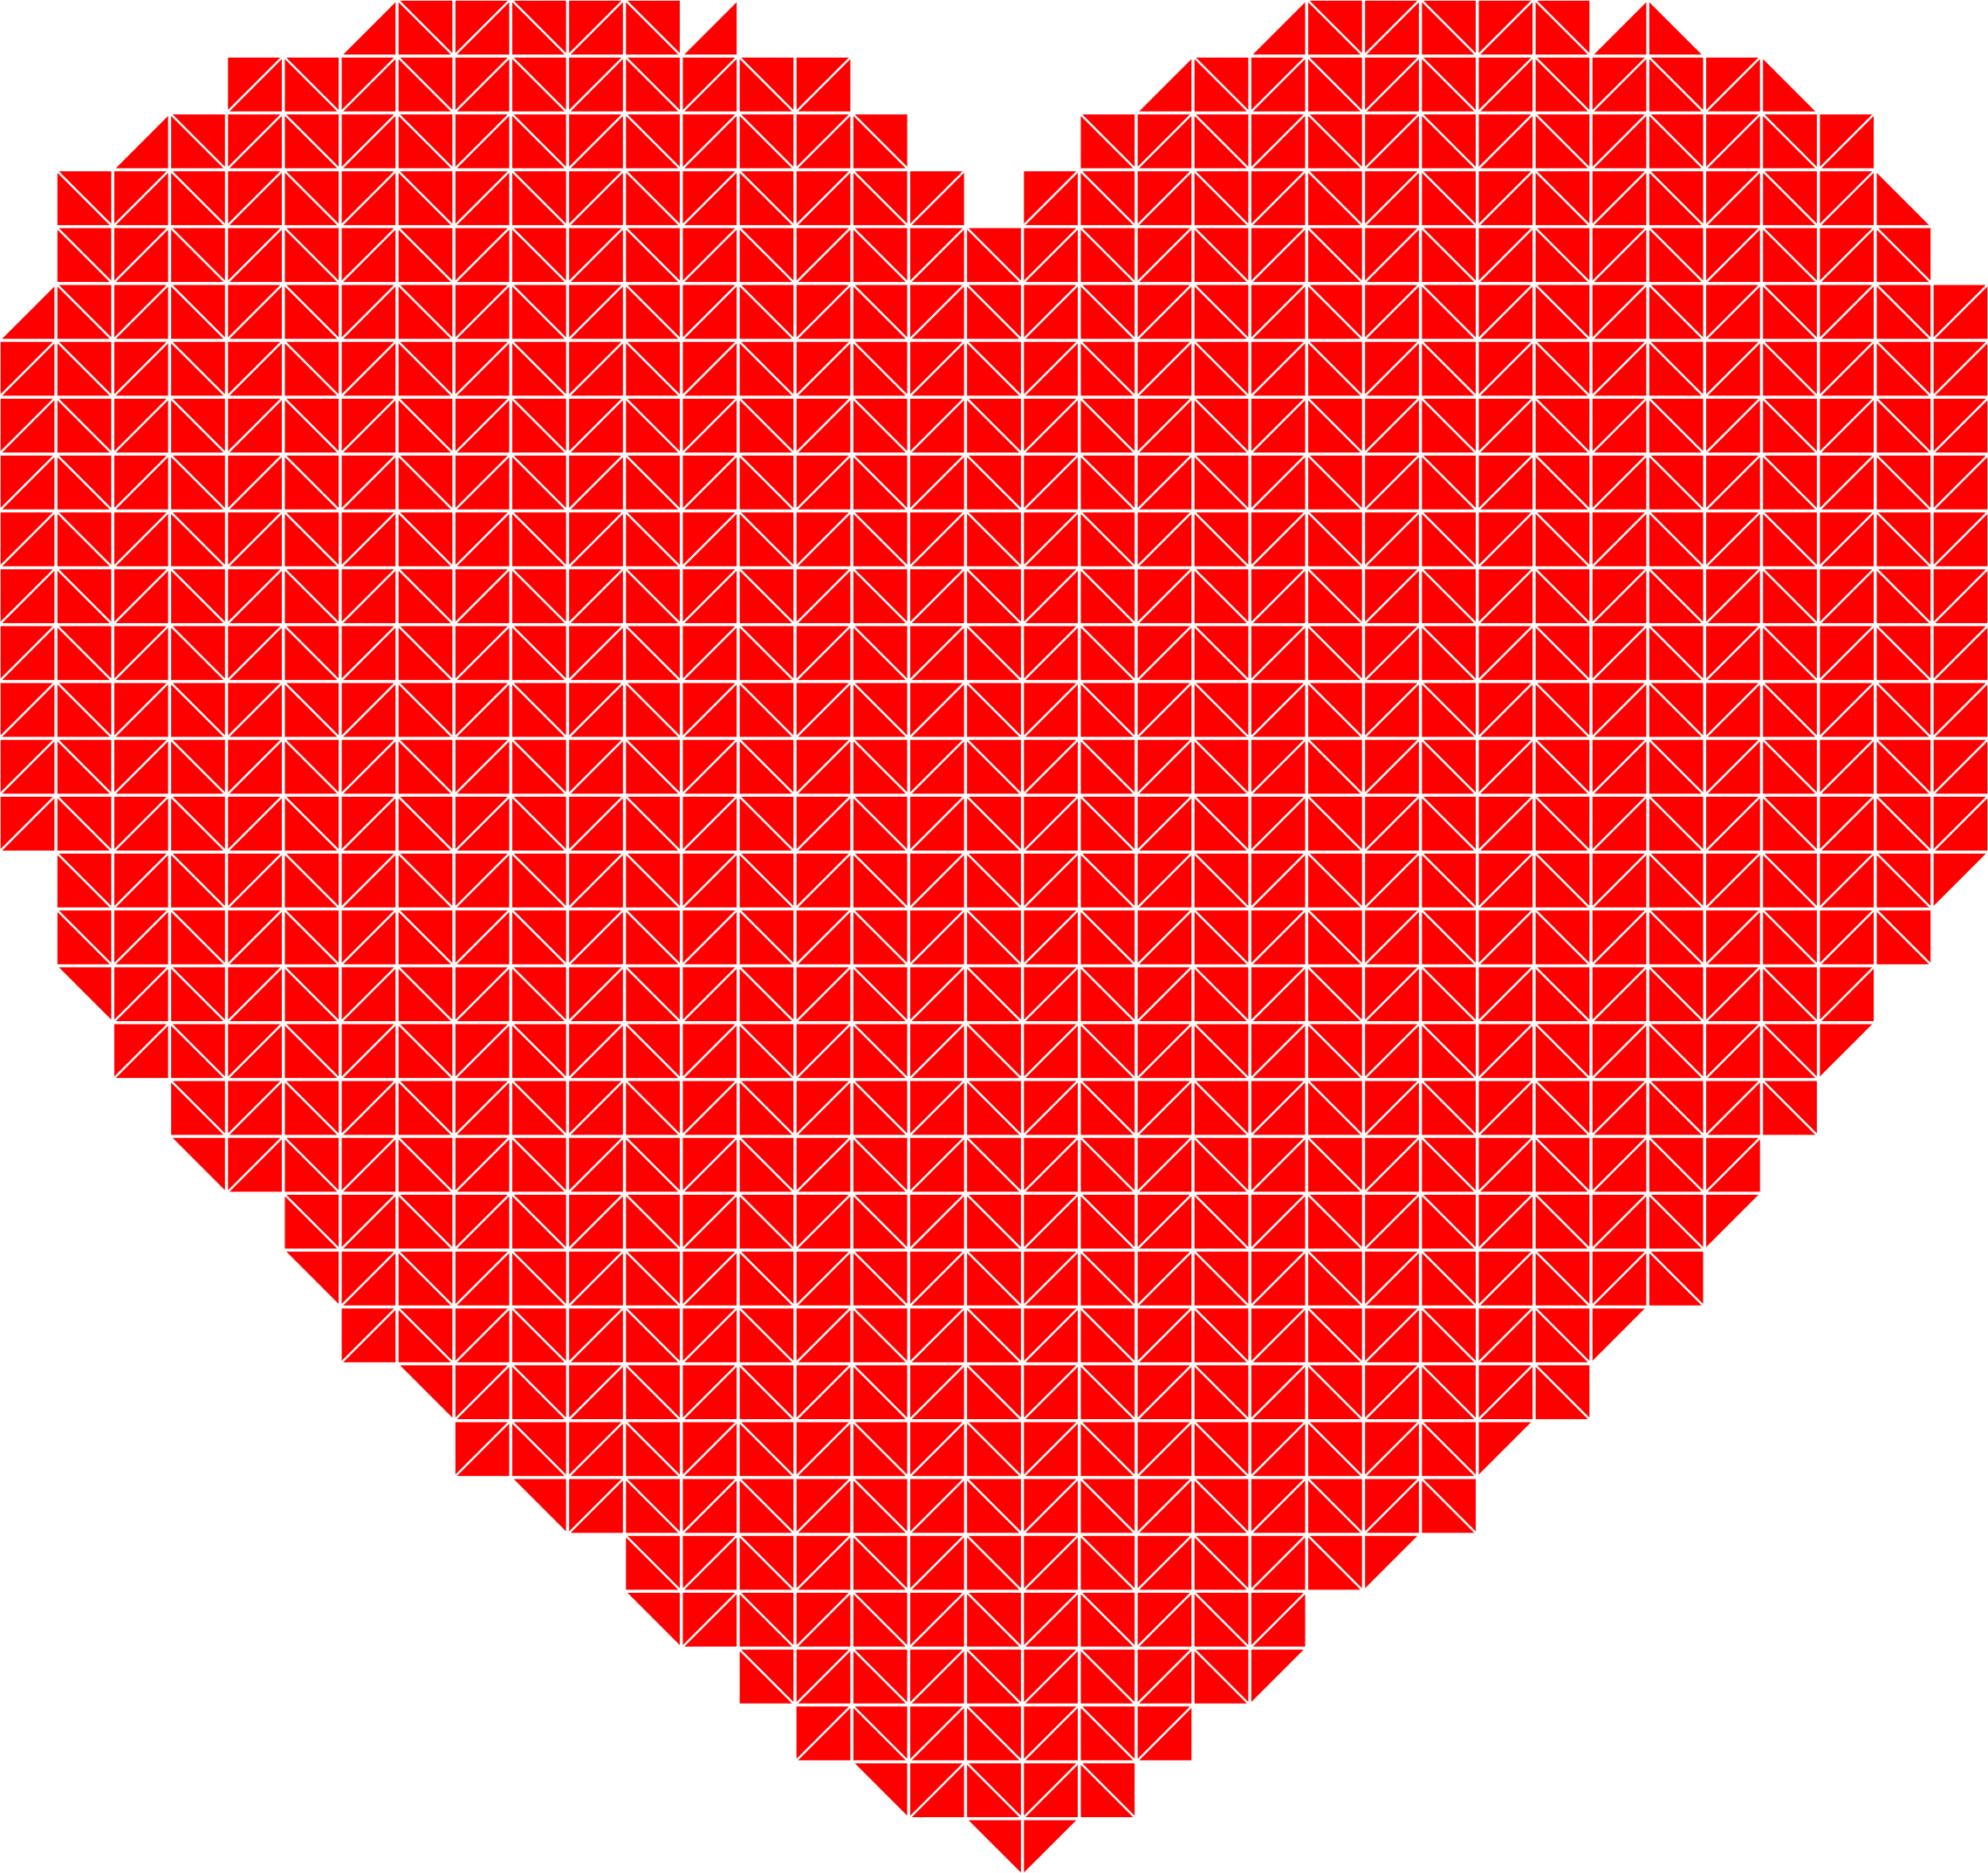 Heart Triangular Mosaic by GDJ